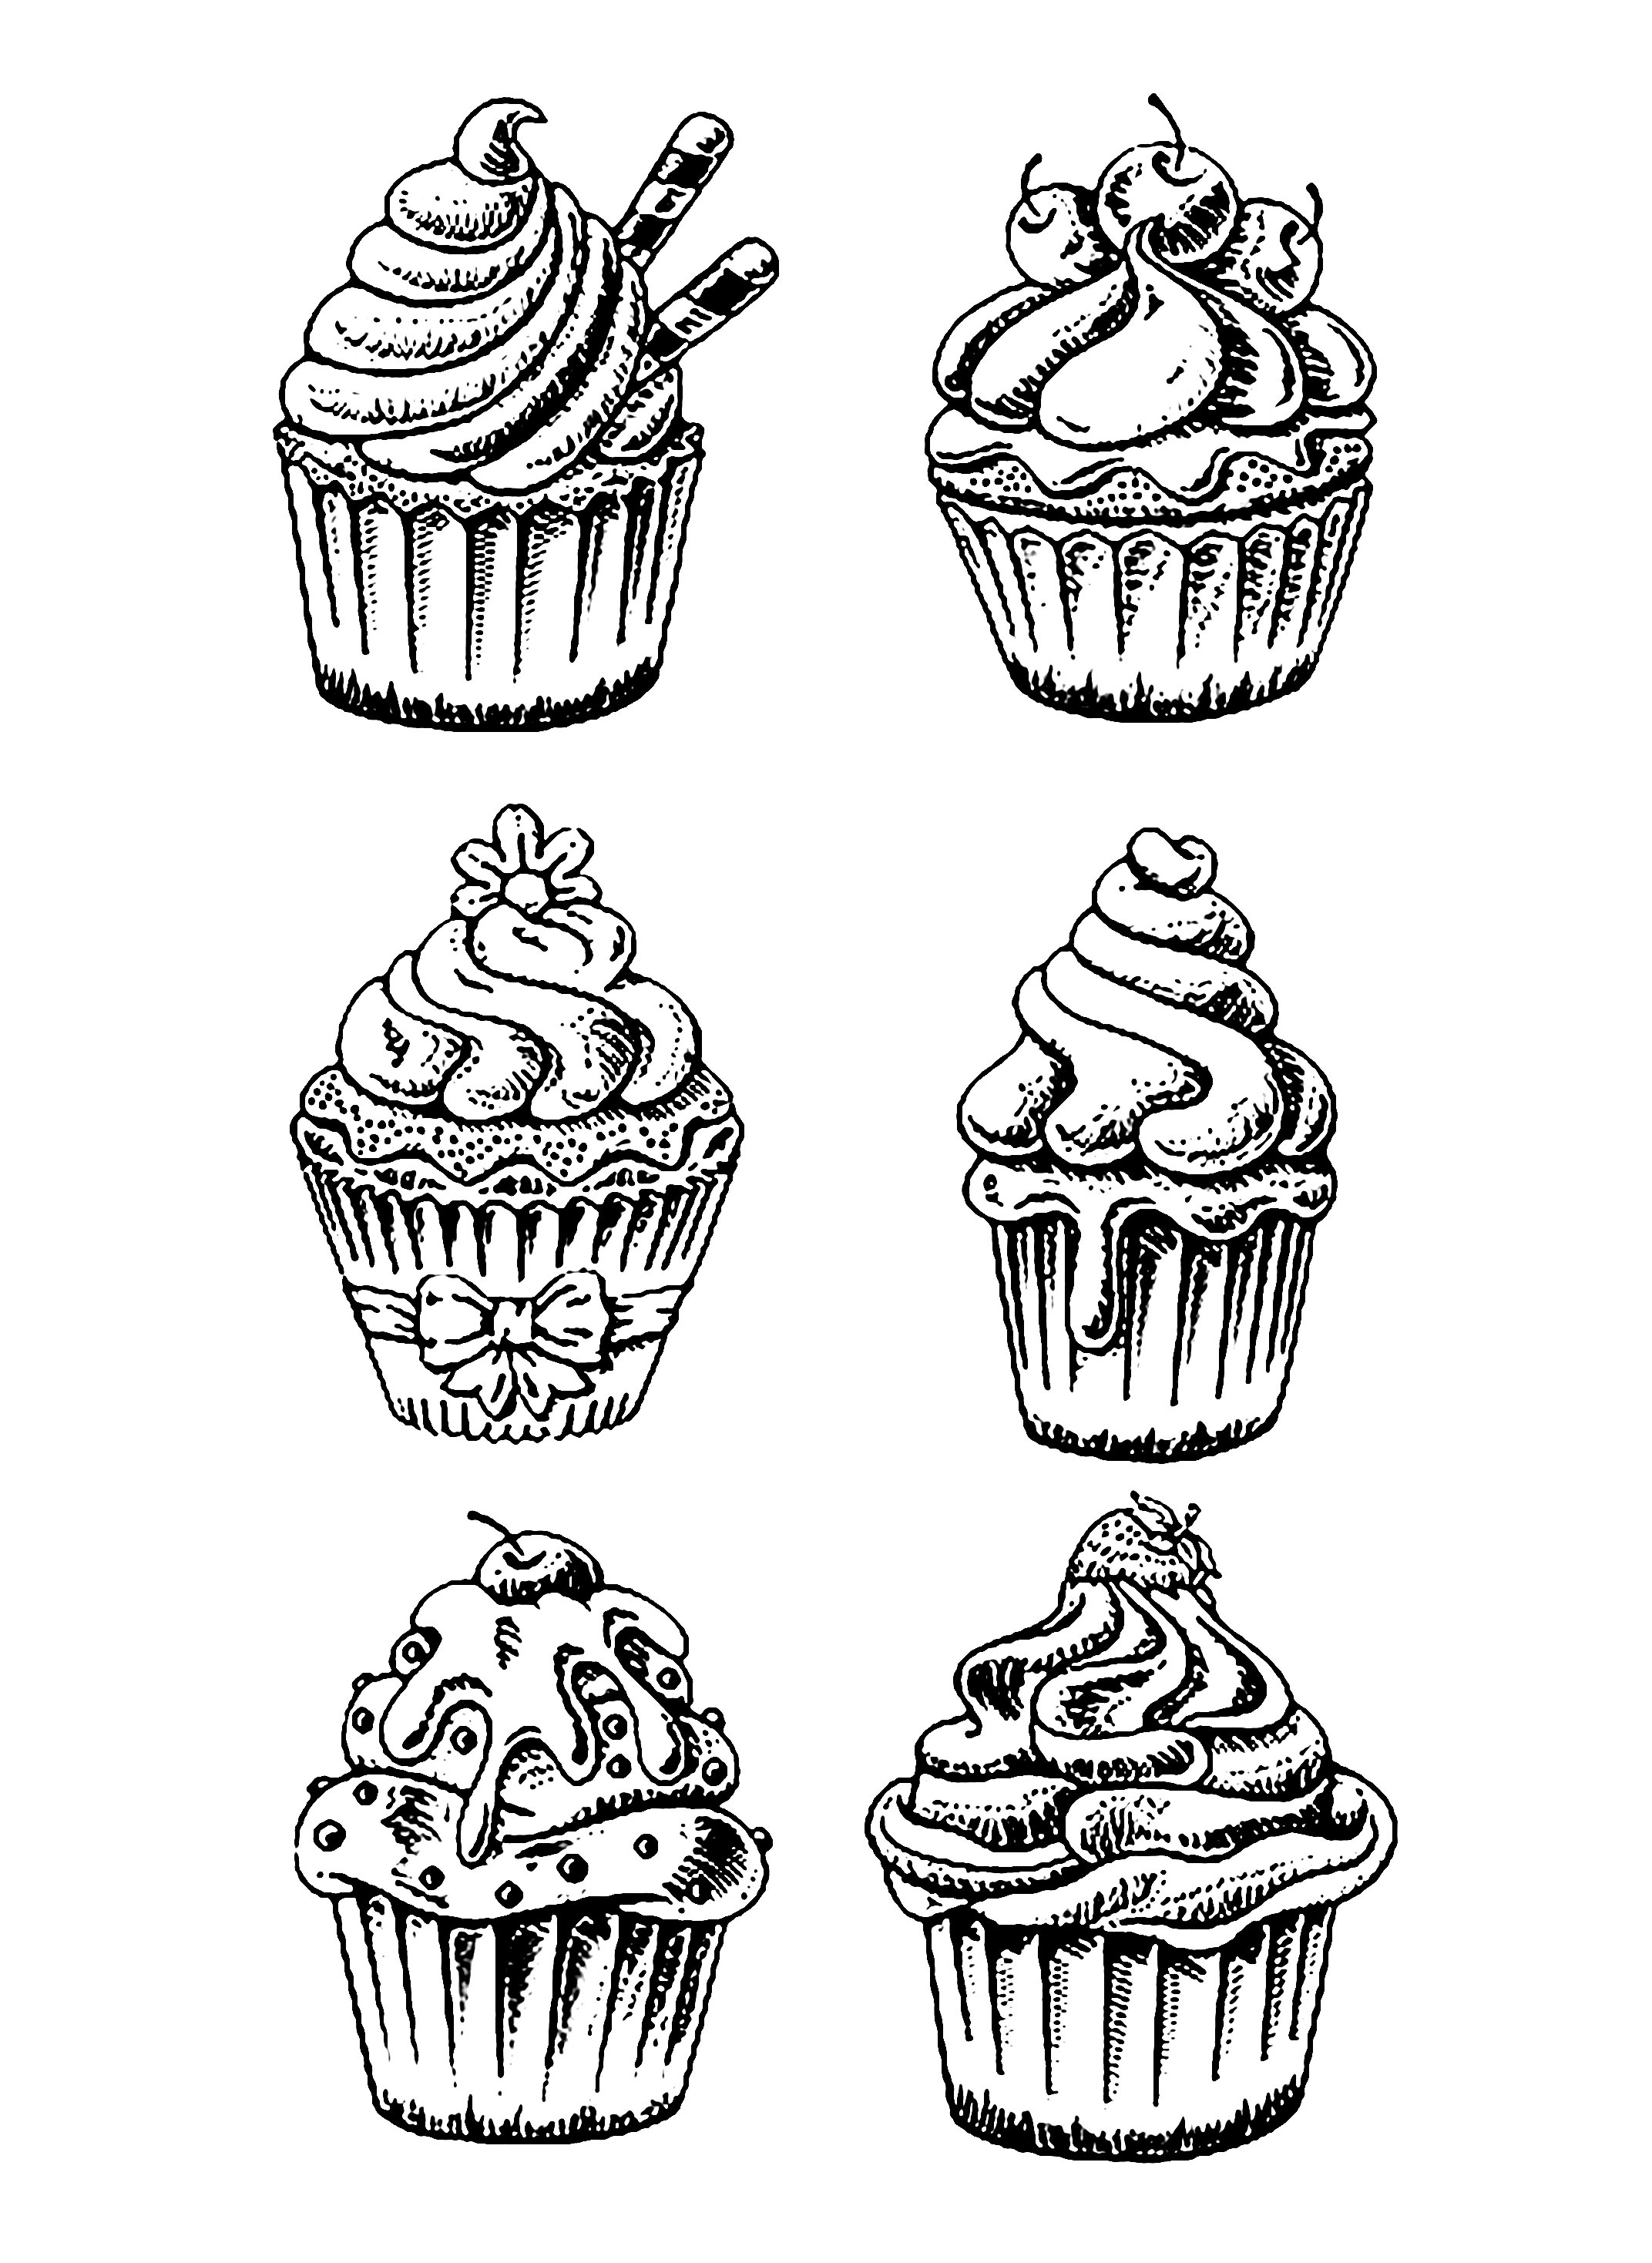 six good cupcakes cup cakes coloring pages for adults justcolor